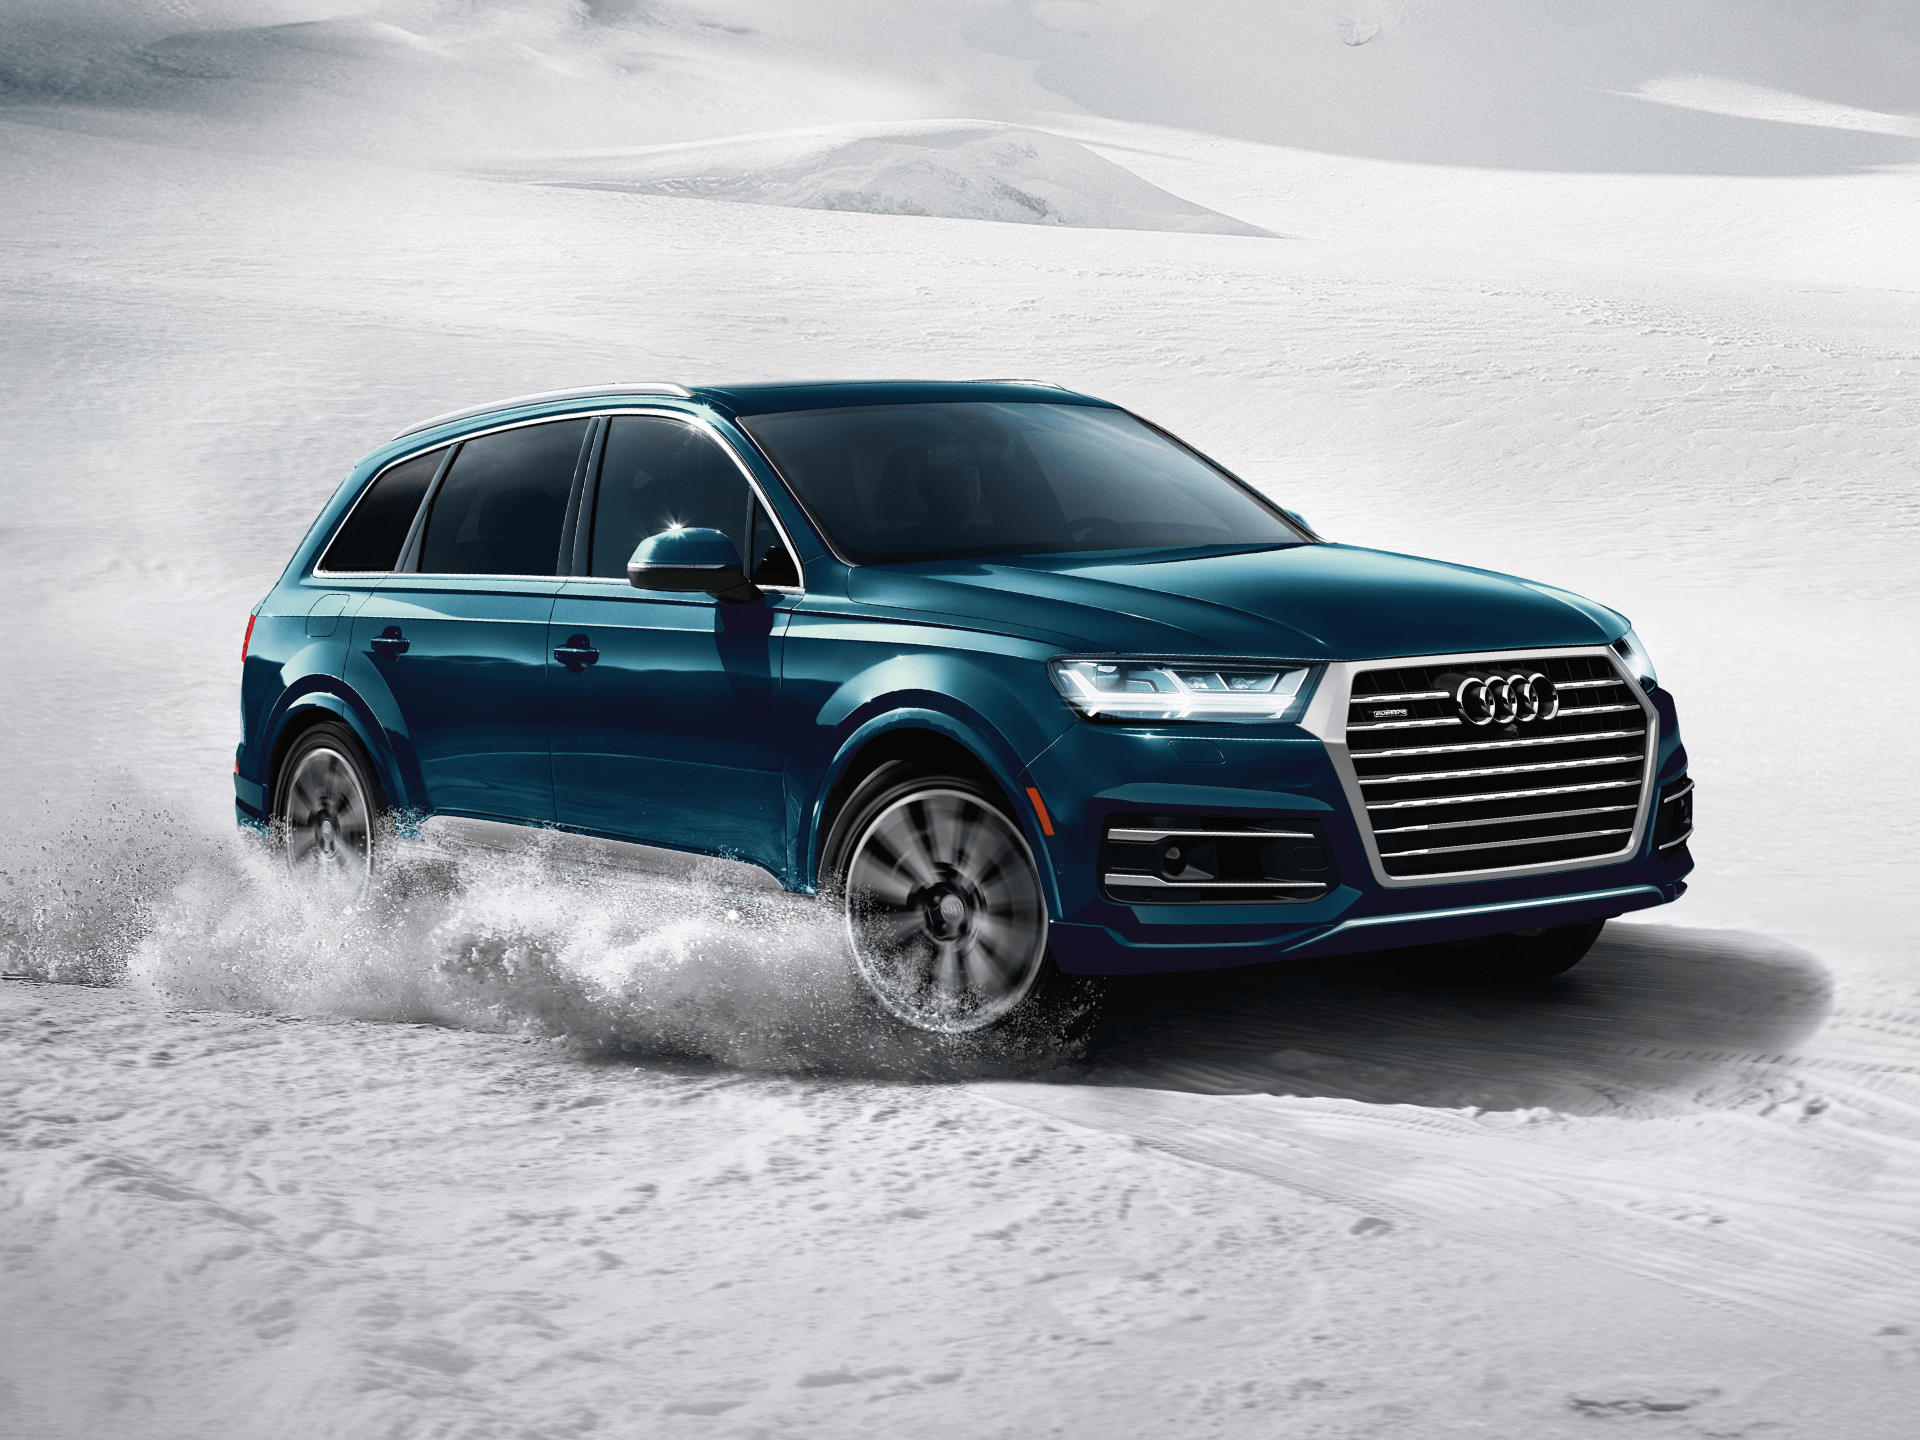 Lease a 2019 Q7 from $305 bi-weekly*